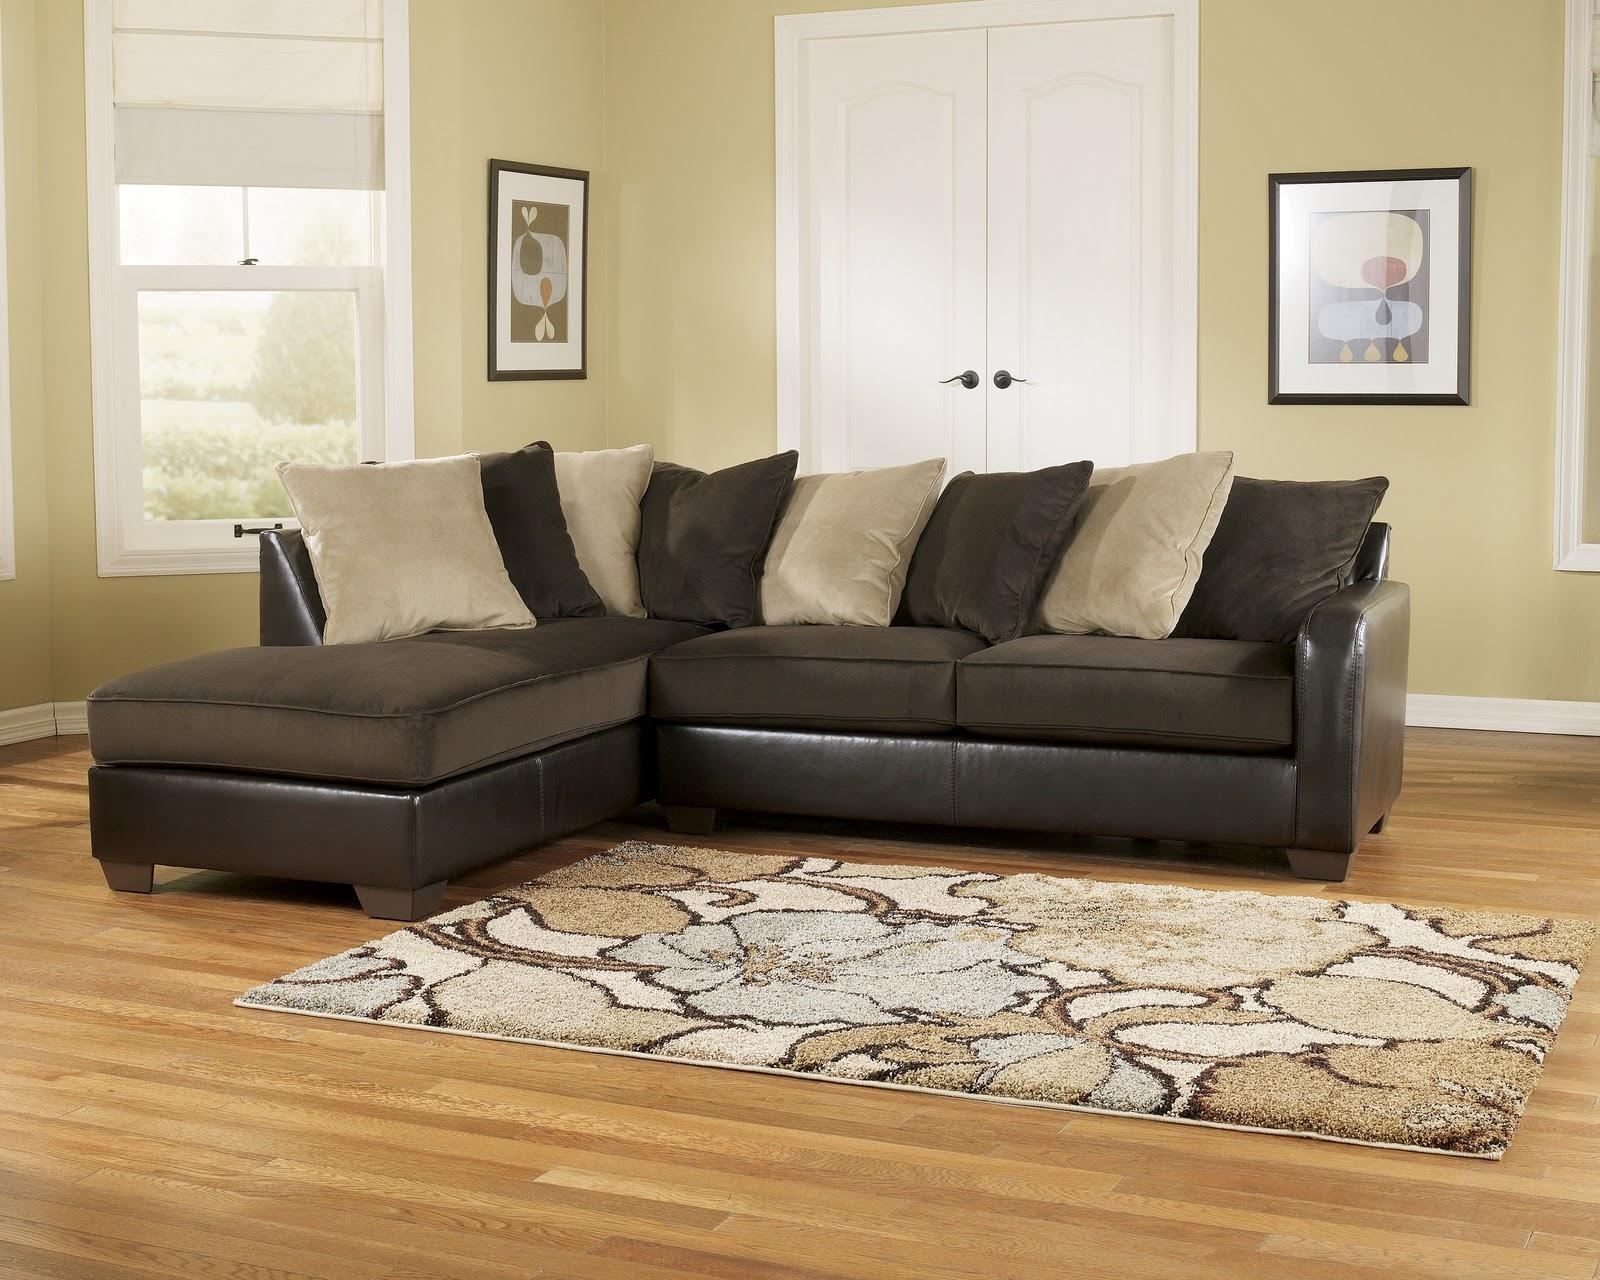 Decorating: Fill Your Living Room With Elegant Ashley Furniture With Chocolate Brown Sectional (Image 6 of 15)